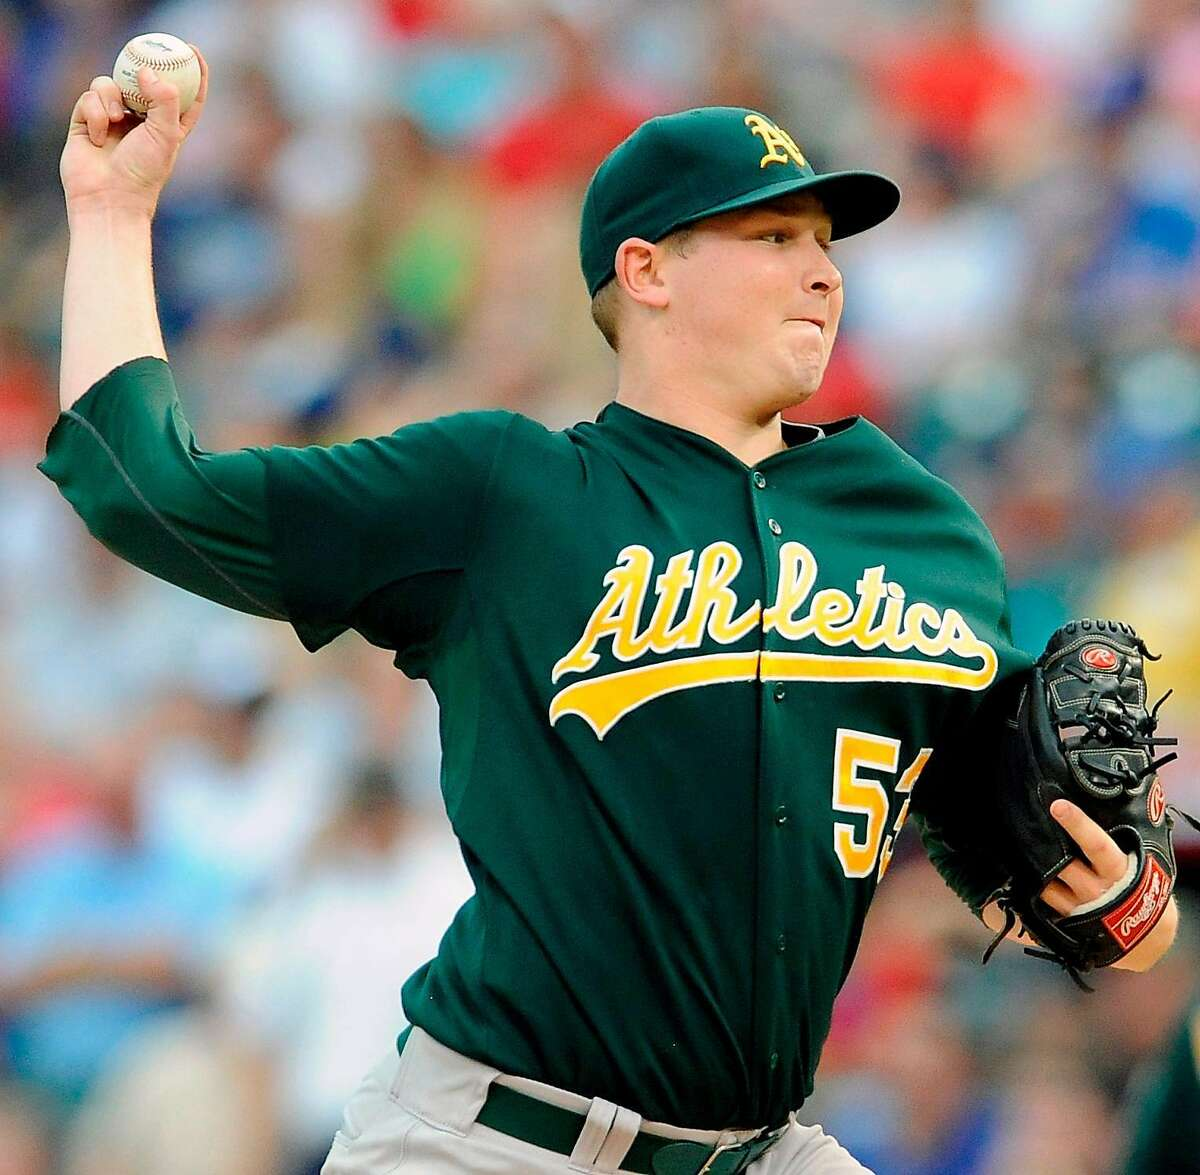 Oakland Athletic starting pitcher Trevor Cahill delivers to the Texas Rangers in the first inning of a baseball game Wednesday, July 28, 2010, in Arlington, Texas. (AP Photo/Cody Duty)